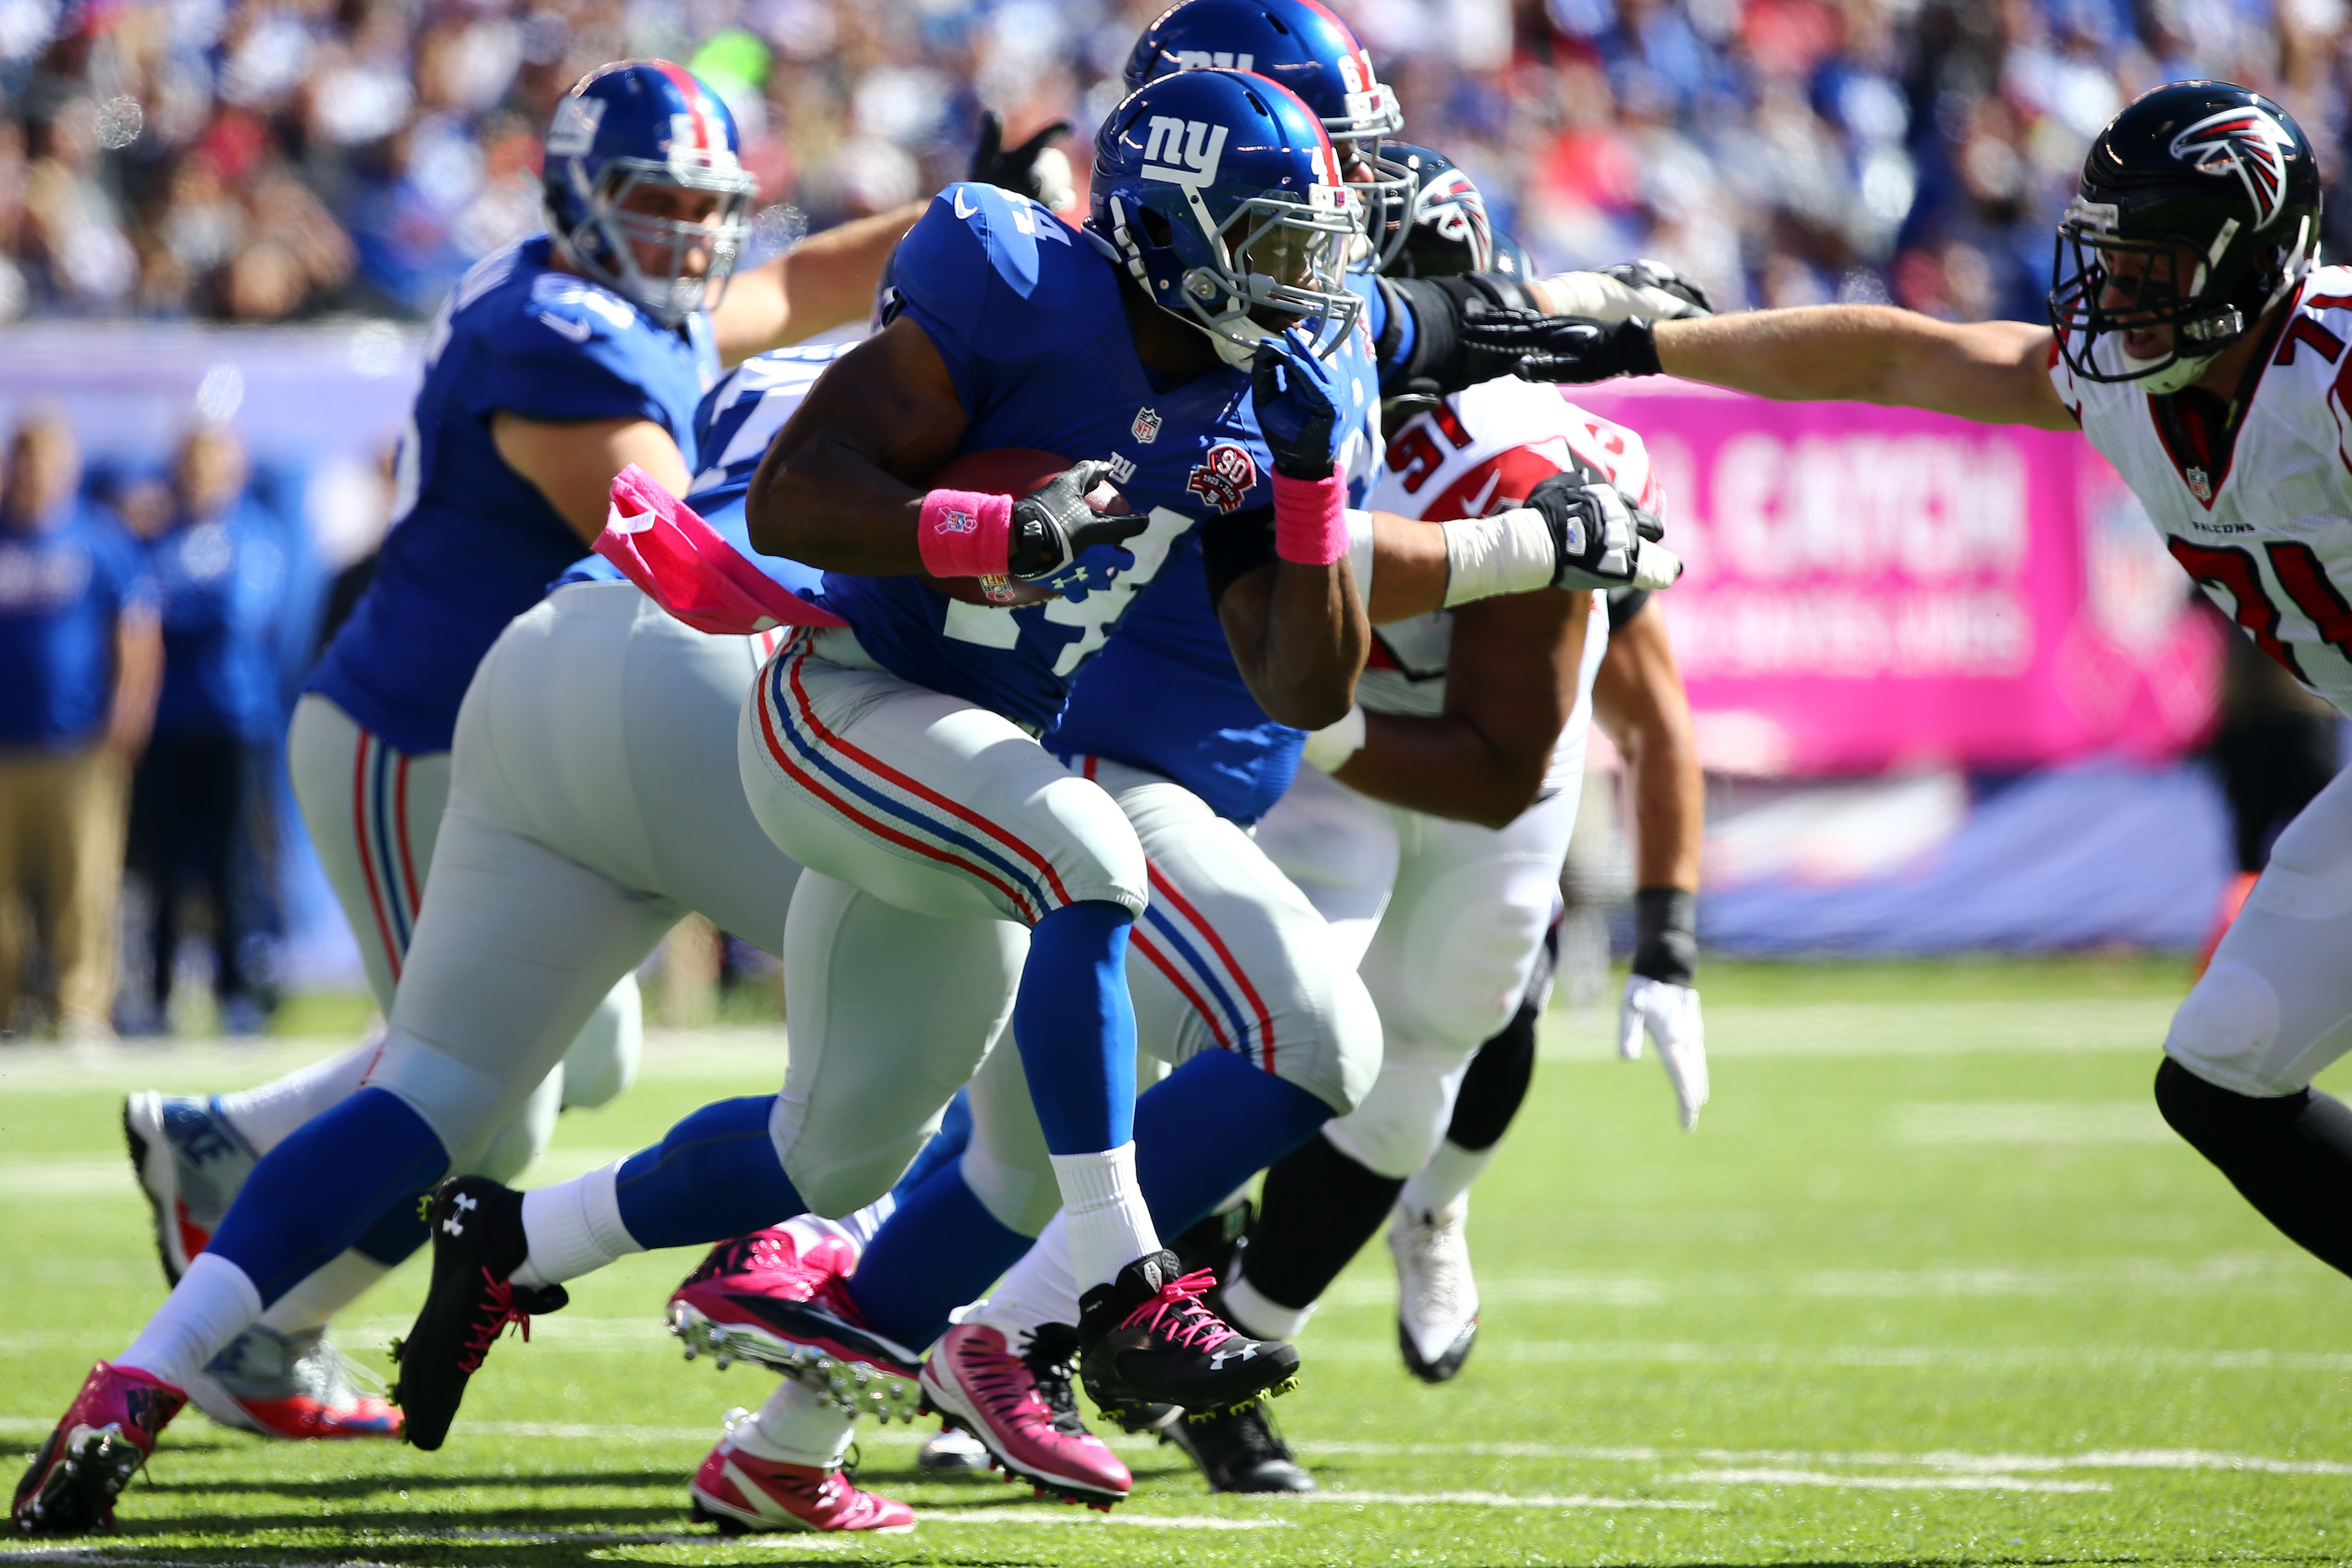 Andre Williams runs with the ball